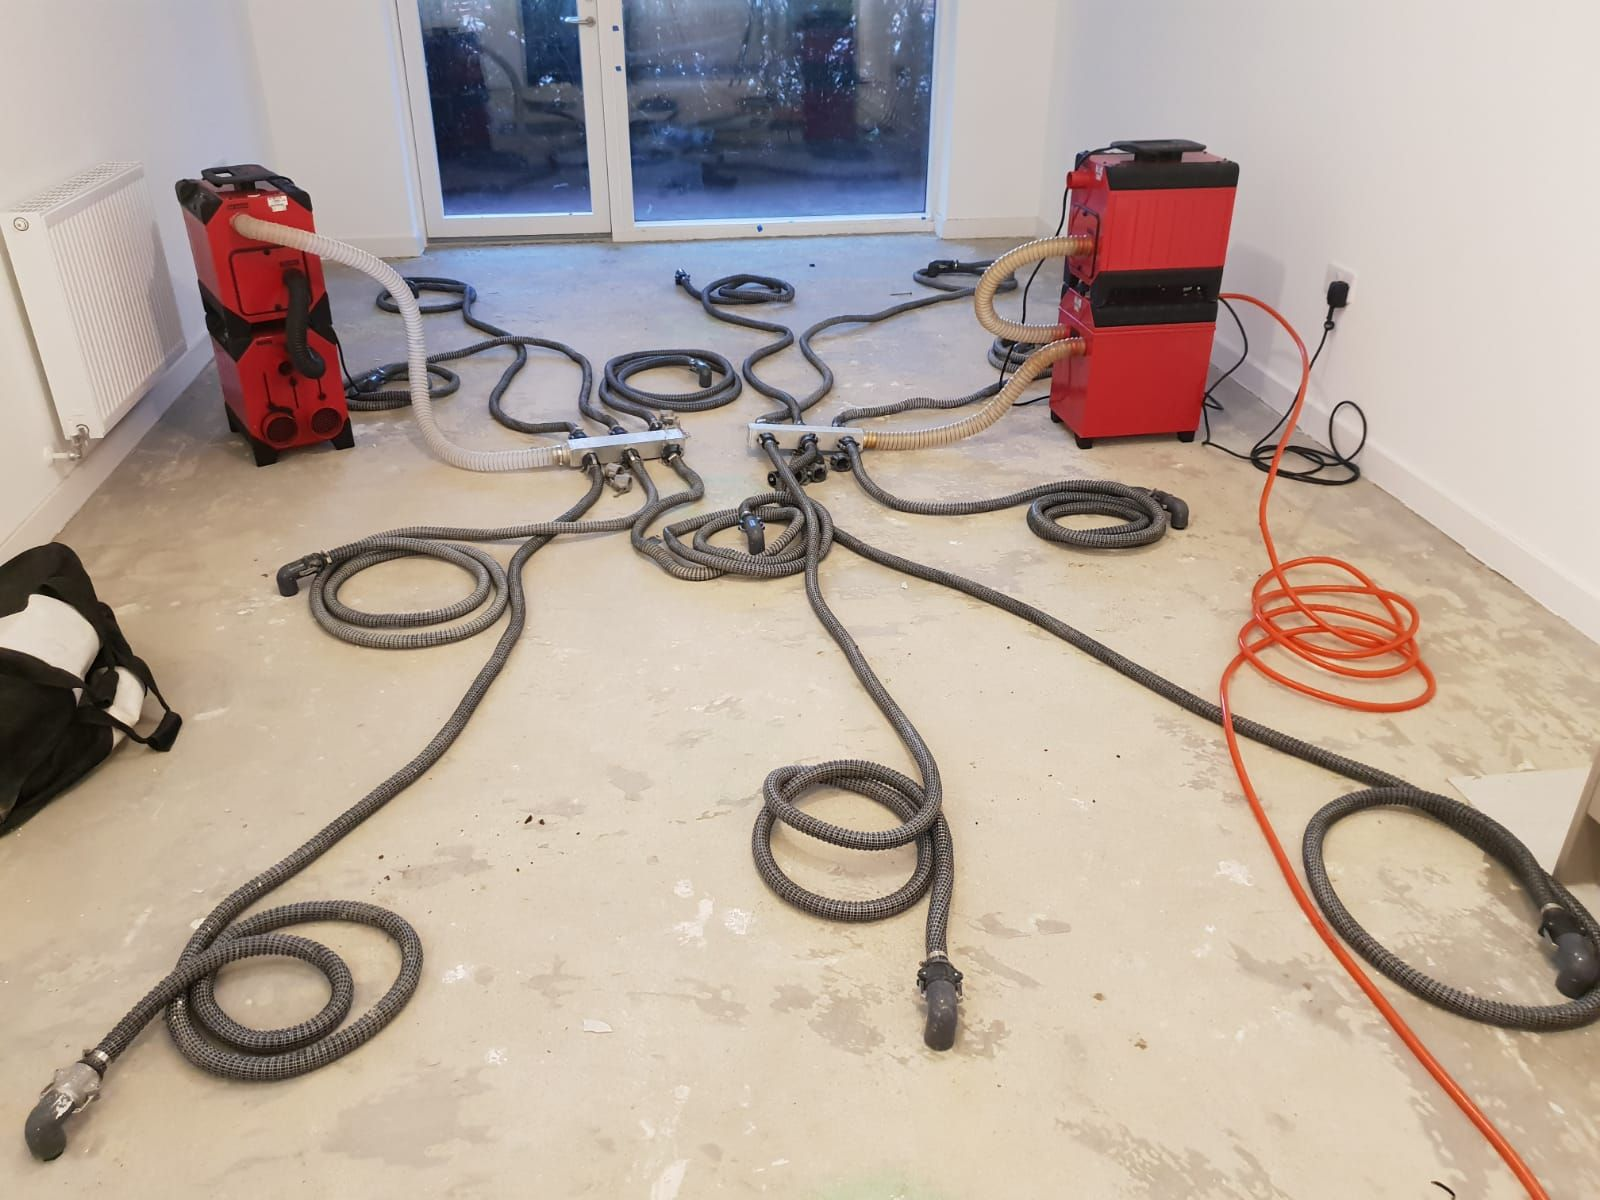 injection drying method used on property in London